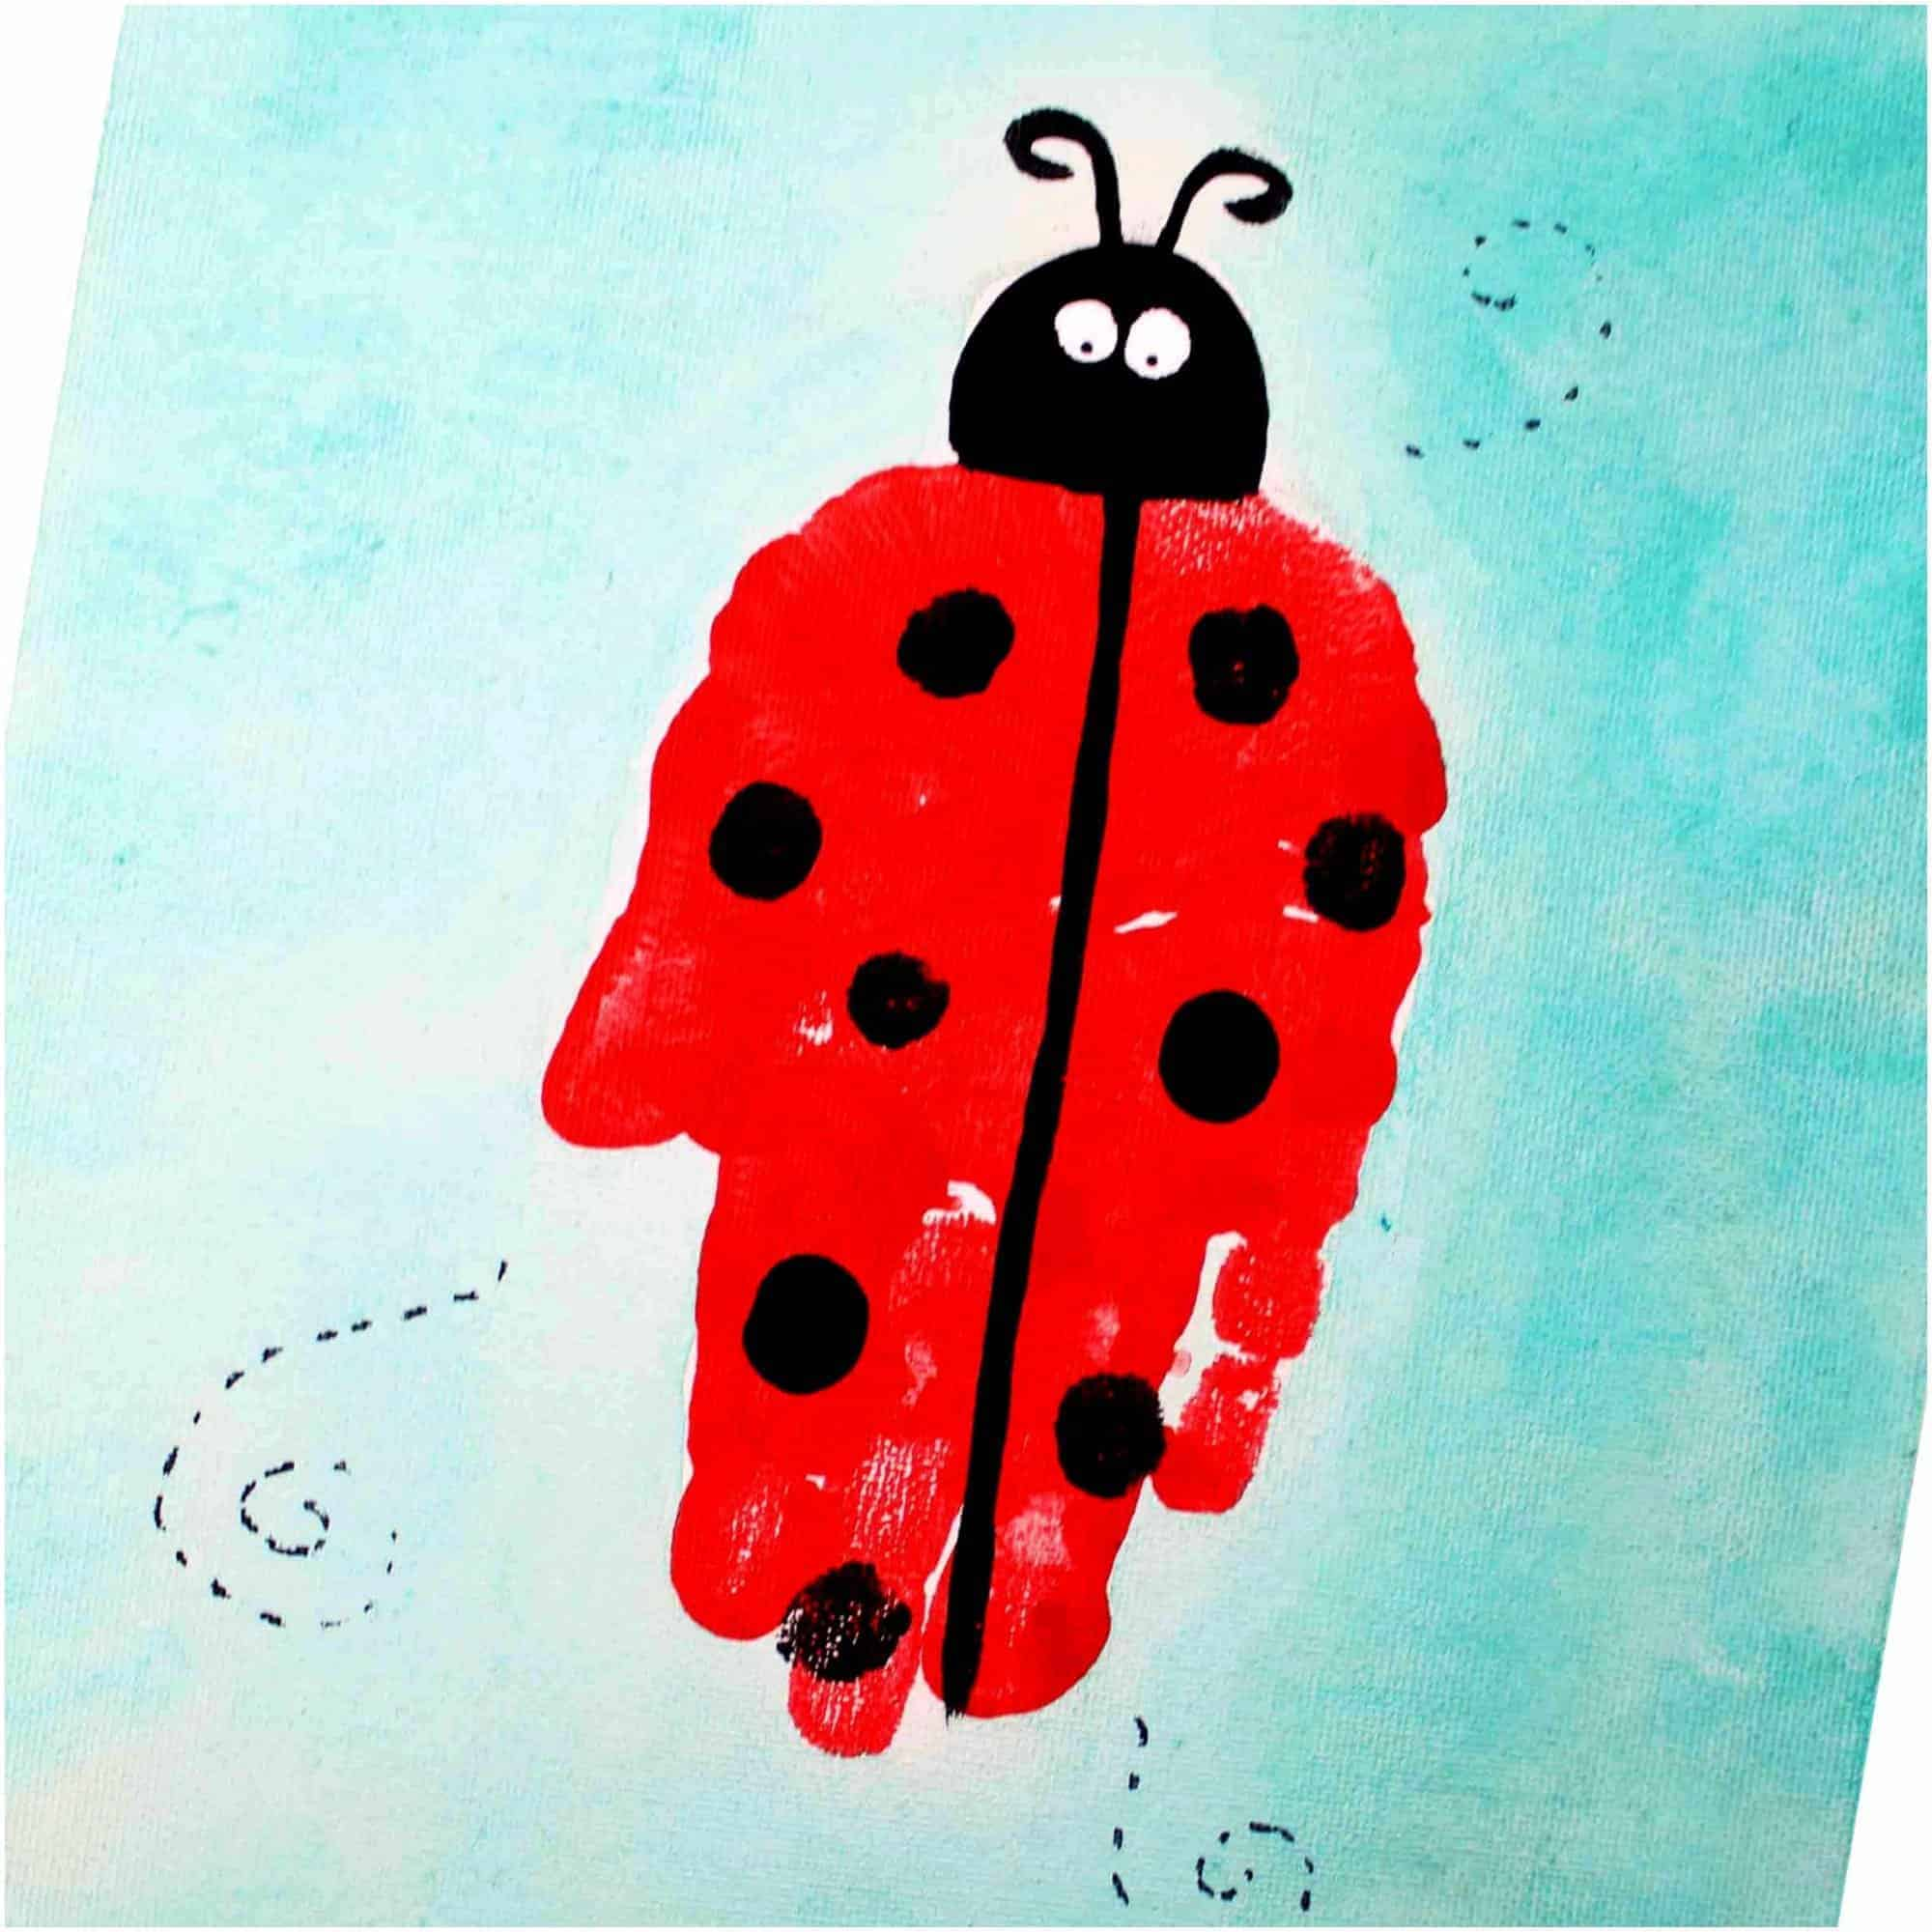 Ladybug Handprint Art For Preschool Kids The Inspiration